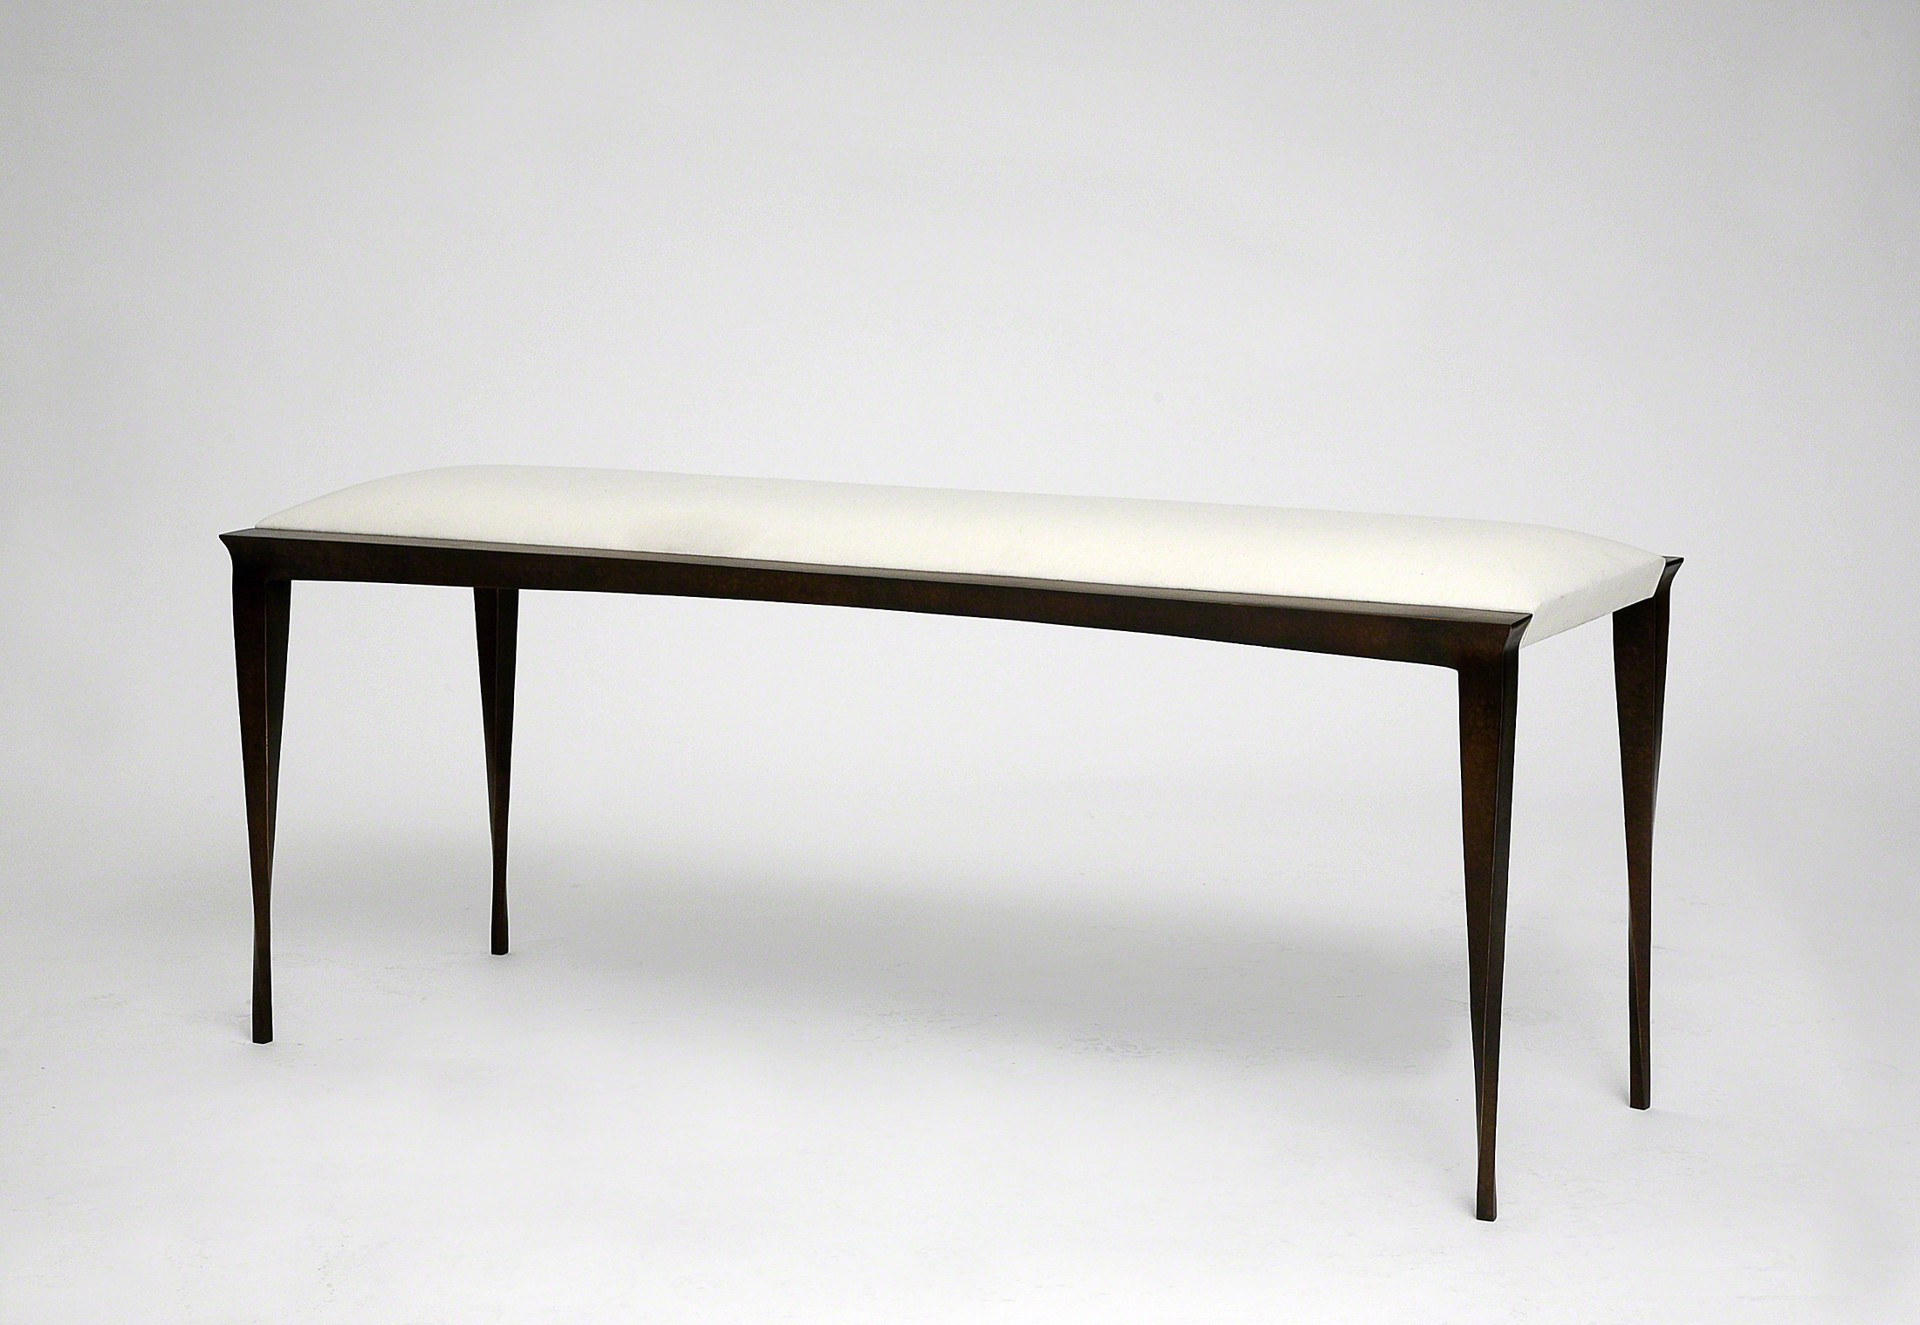 Bench in Bronze by Anasthasia Millot